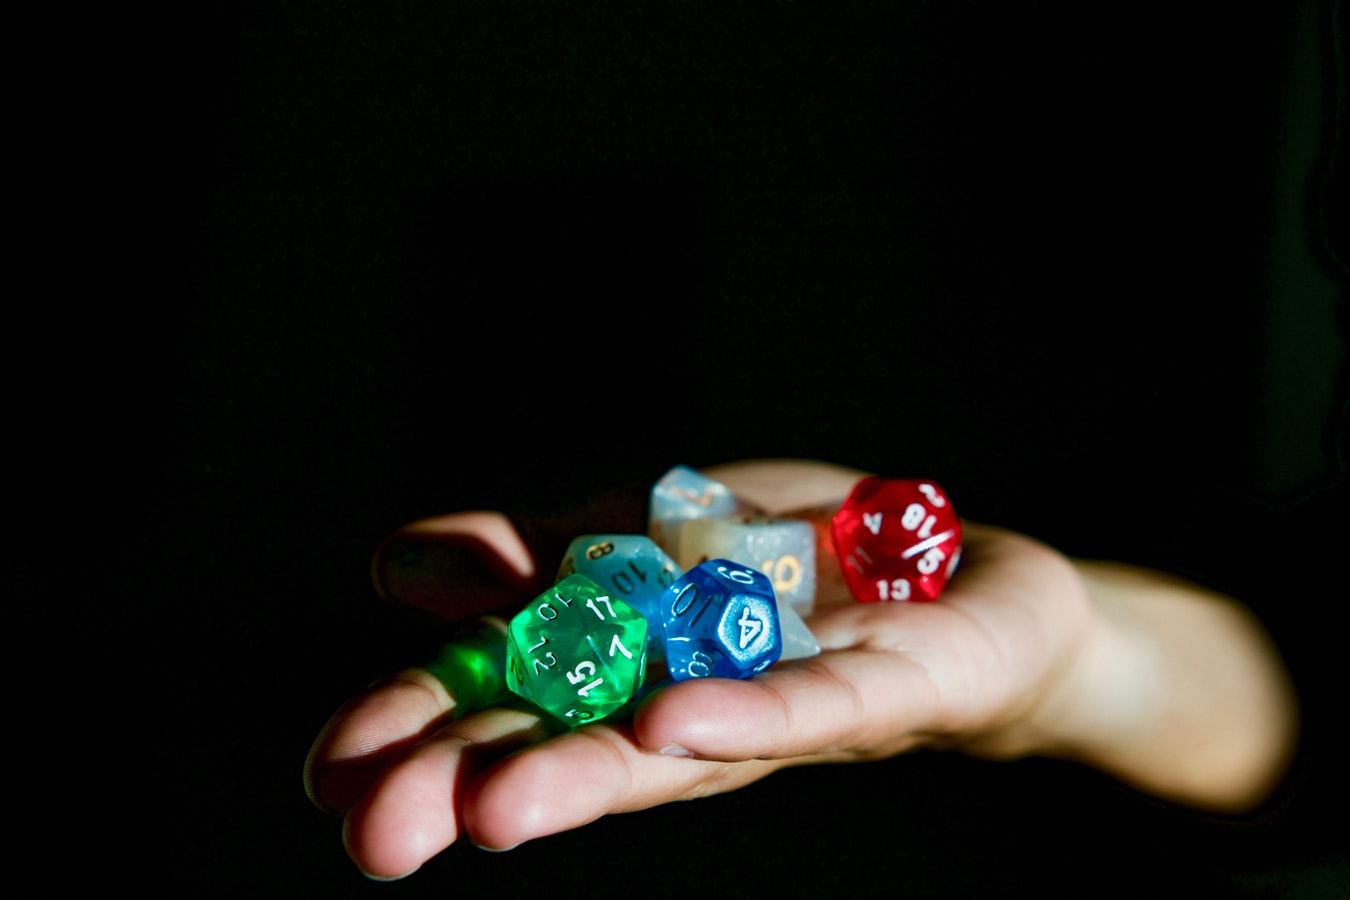 Dungeons and dragons dice for gamers player folks